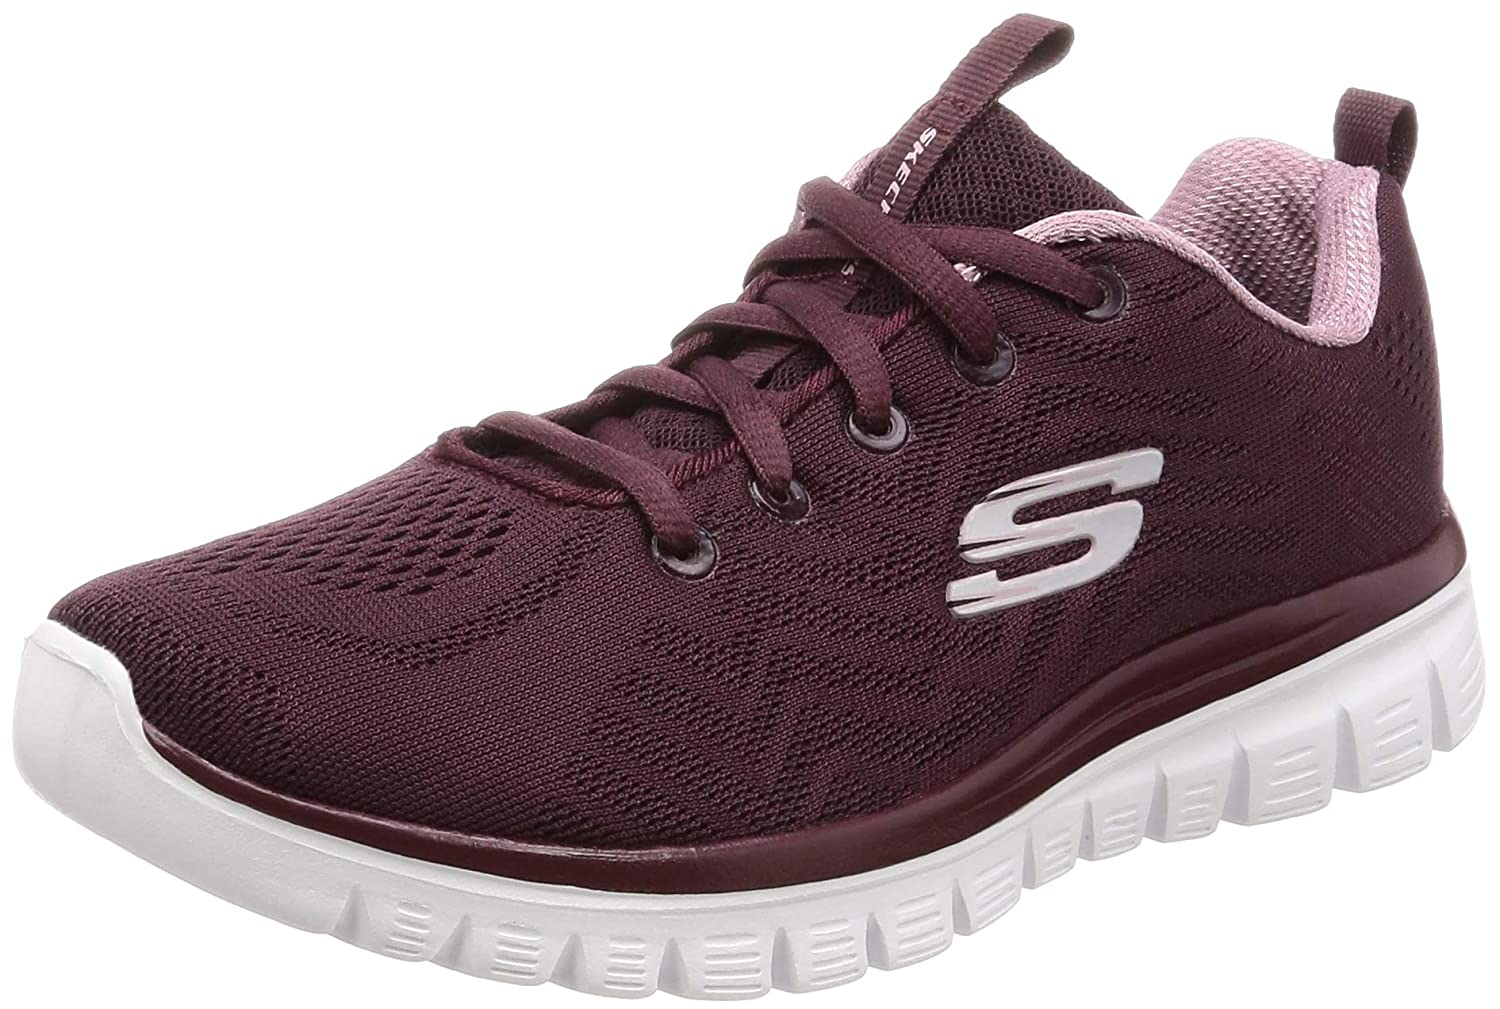 SKECHERS 12615 Wine Graceful Get Connected Mujer